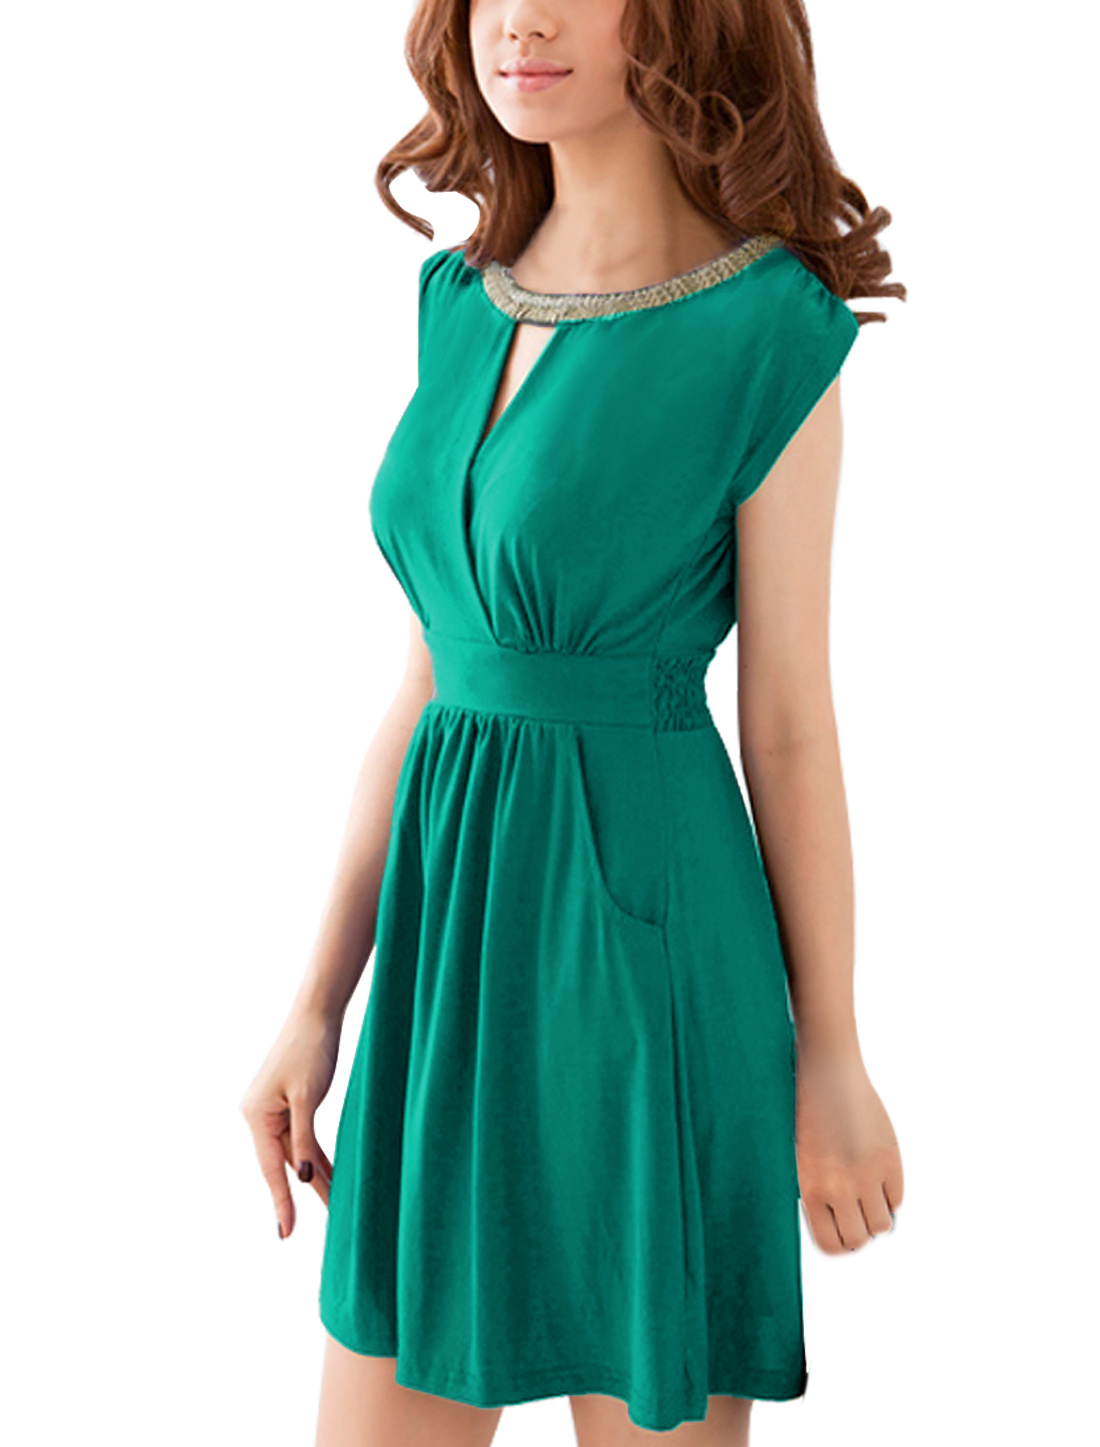 Ladies Studs Decor Neck Two Pockets Teal Green Dress S